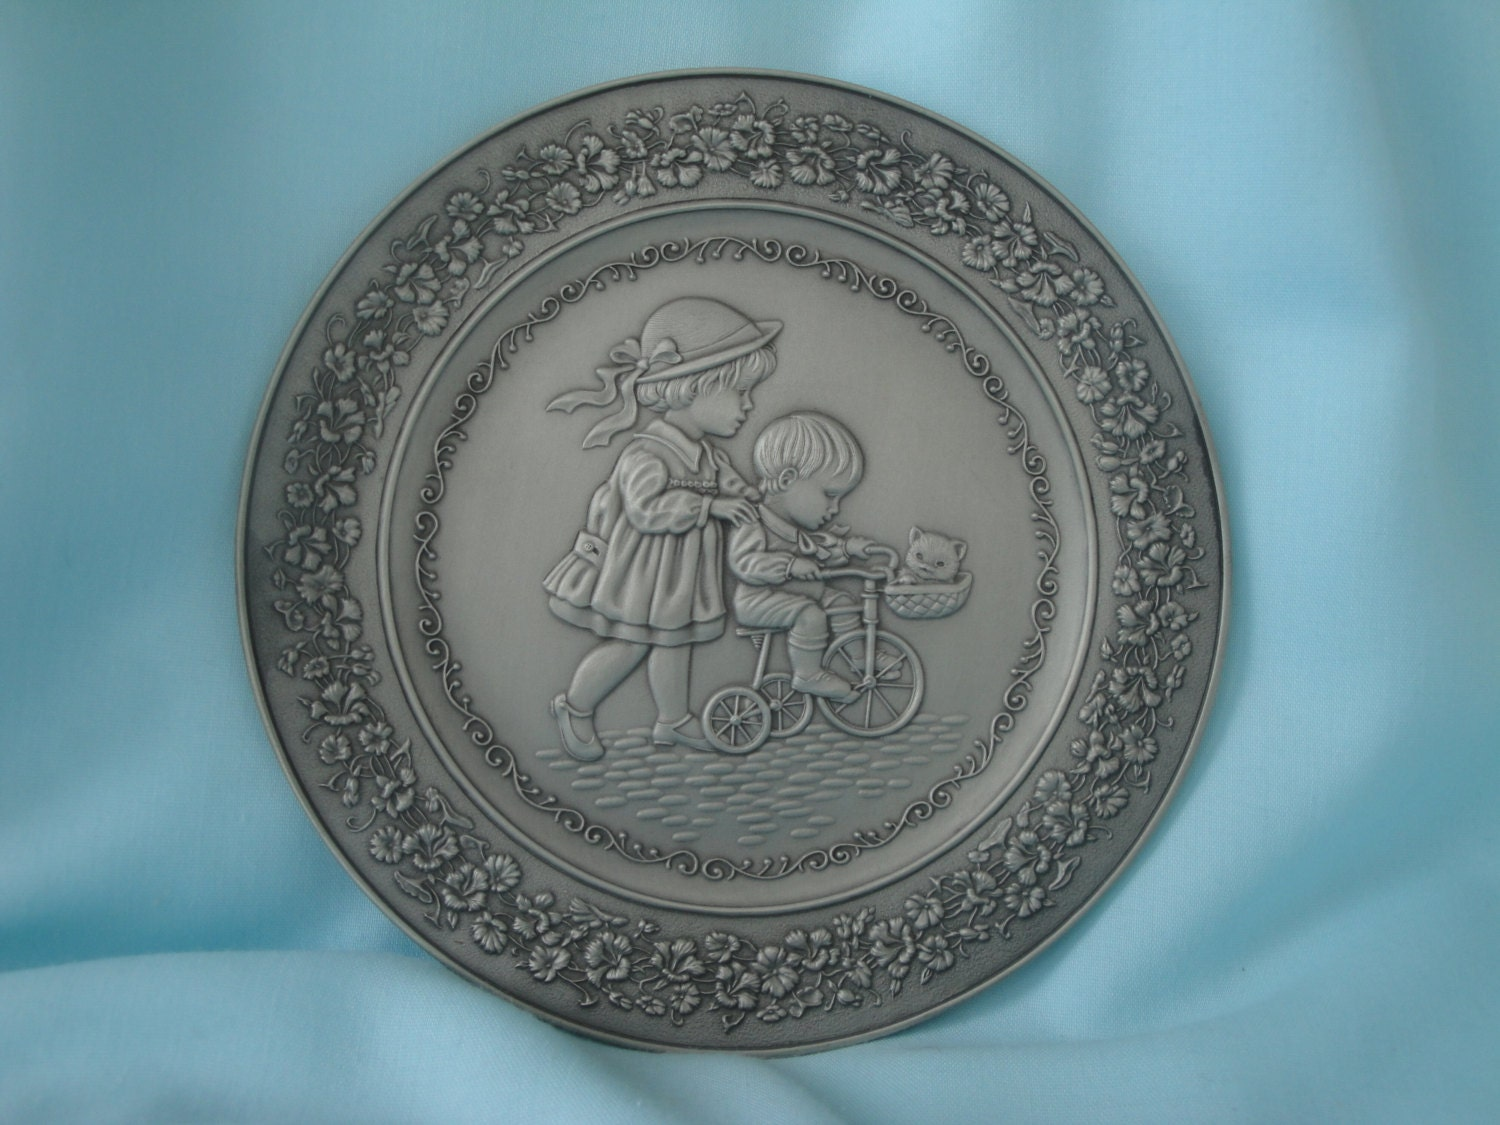 Pewter Plate Hallmark Chart England: 1983 Pewter Children At Play Hallmark Plate/Limited Edition